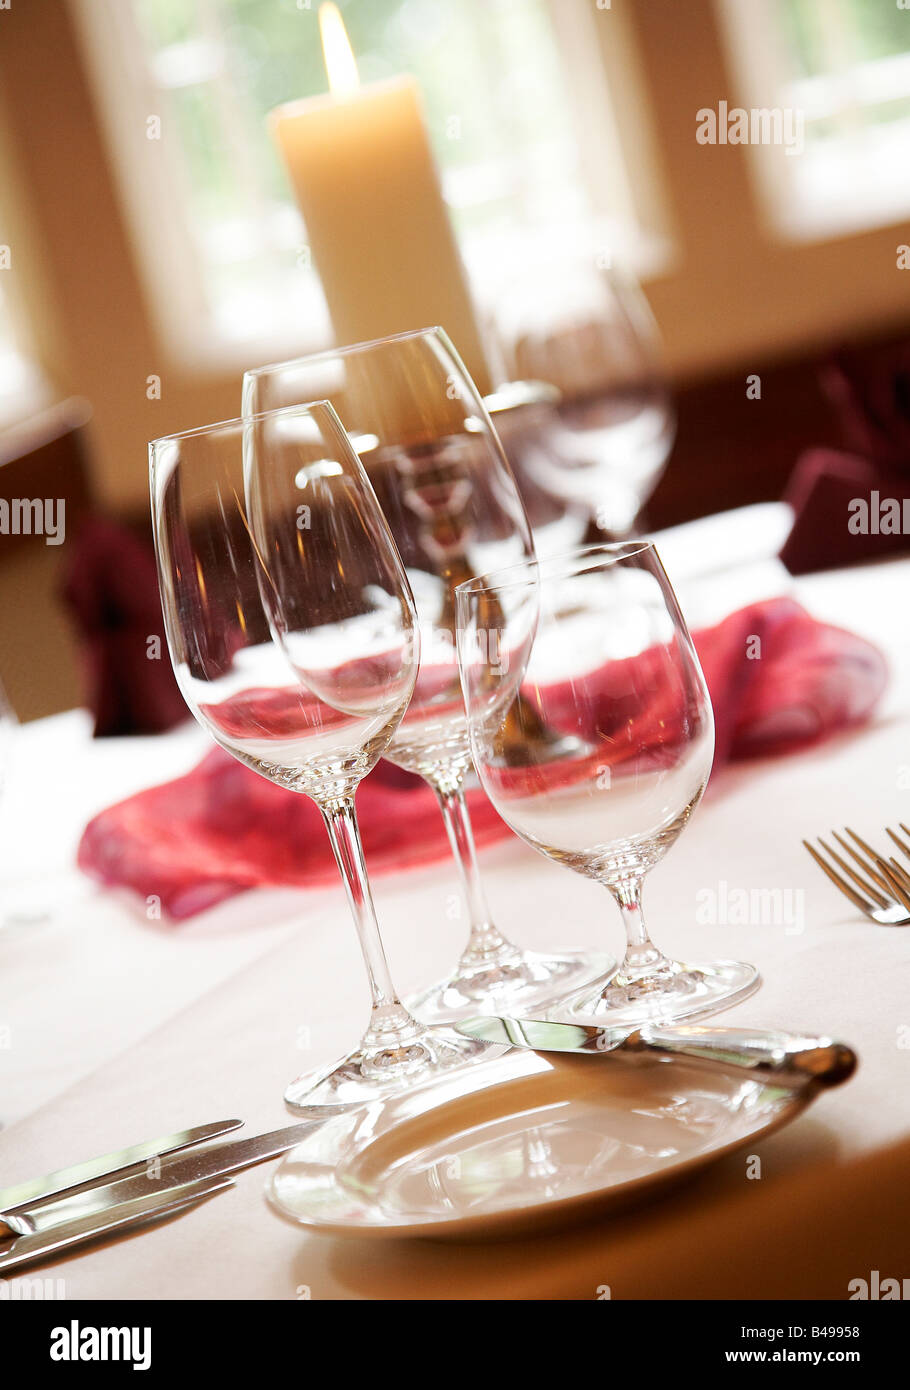 Table Setting With Empty Wine Glasses Stock Photo Alamy - Wine glass table setting